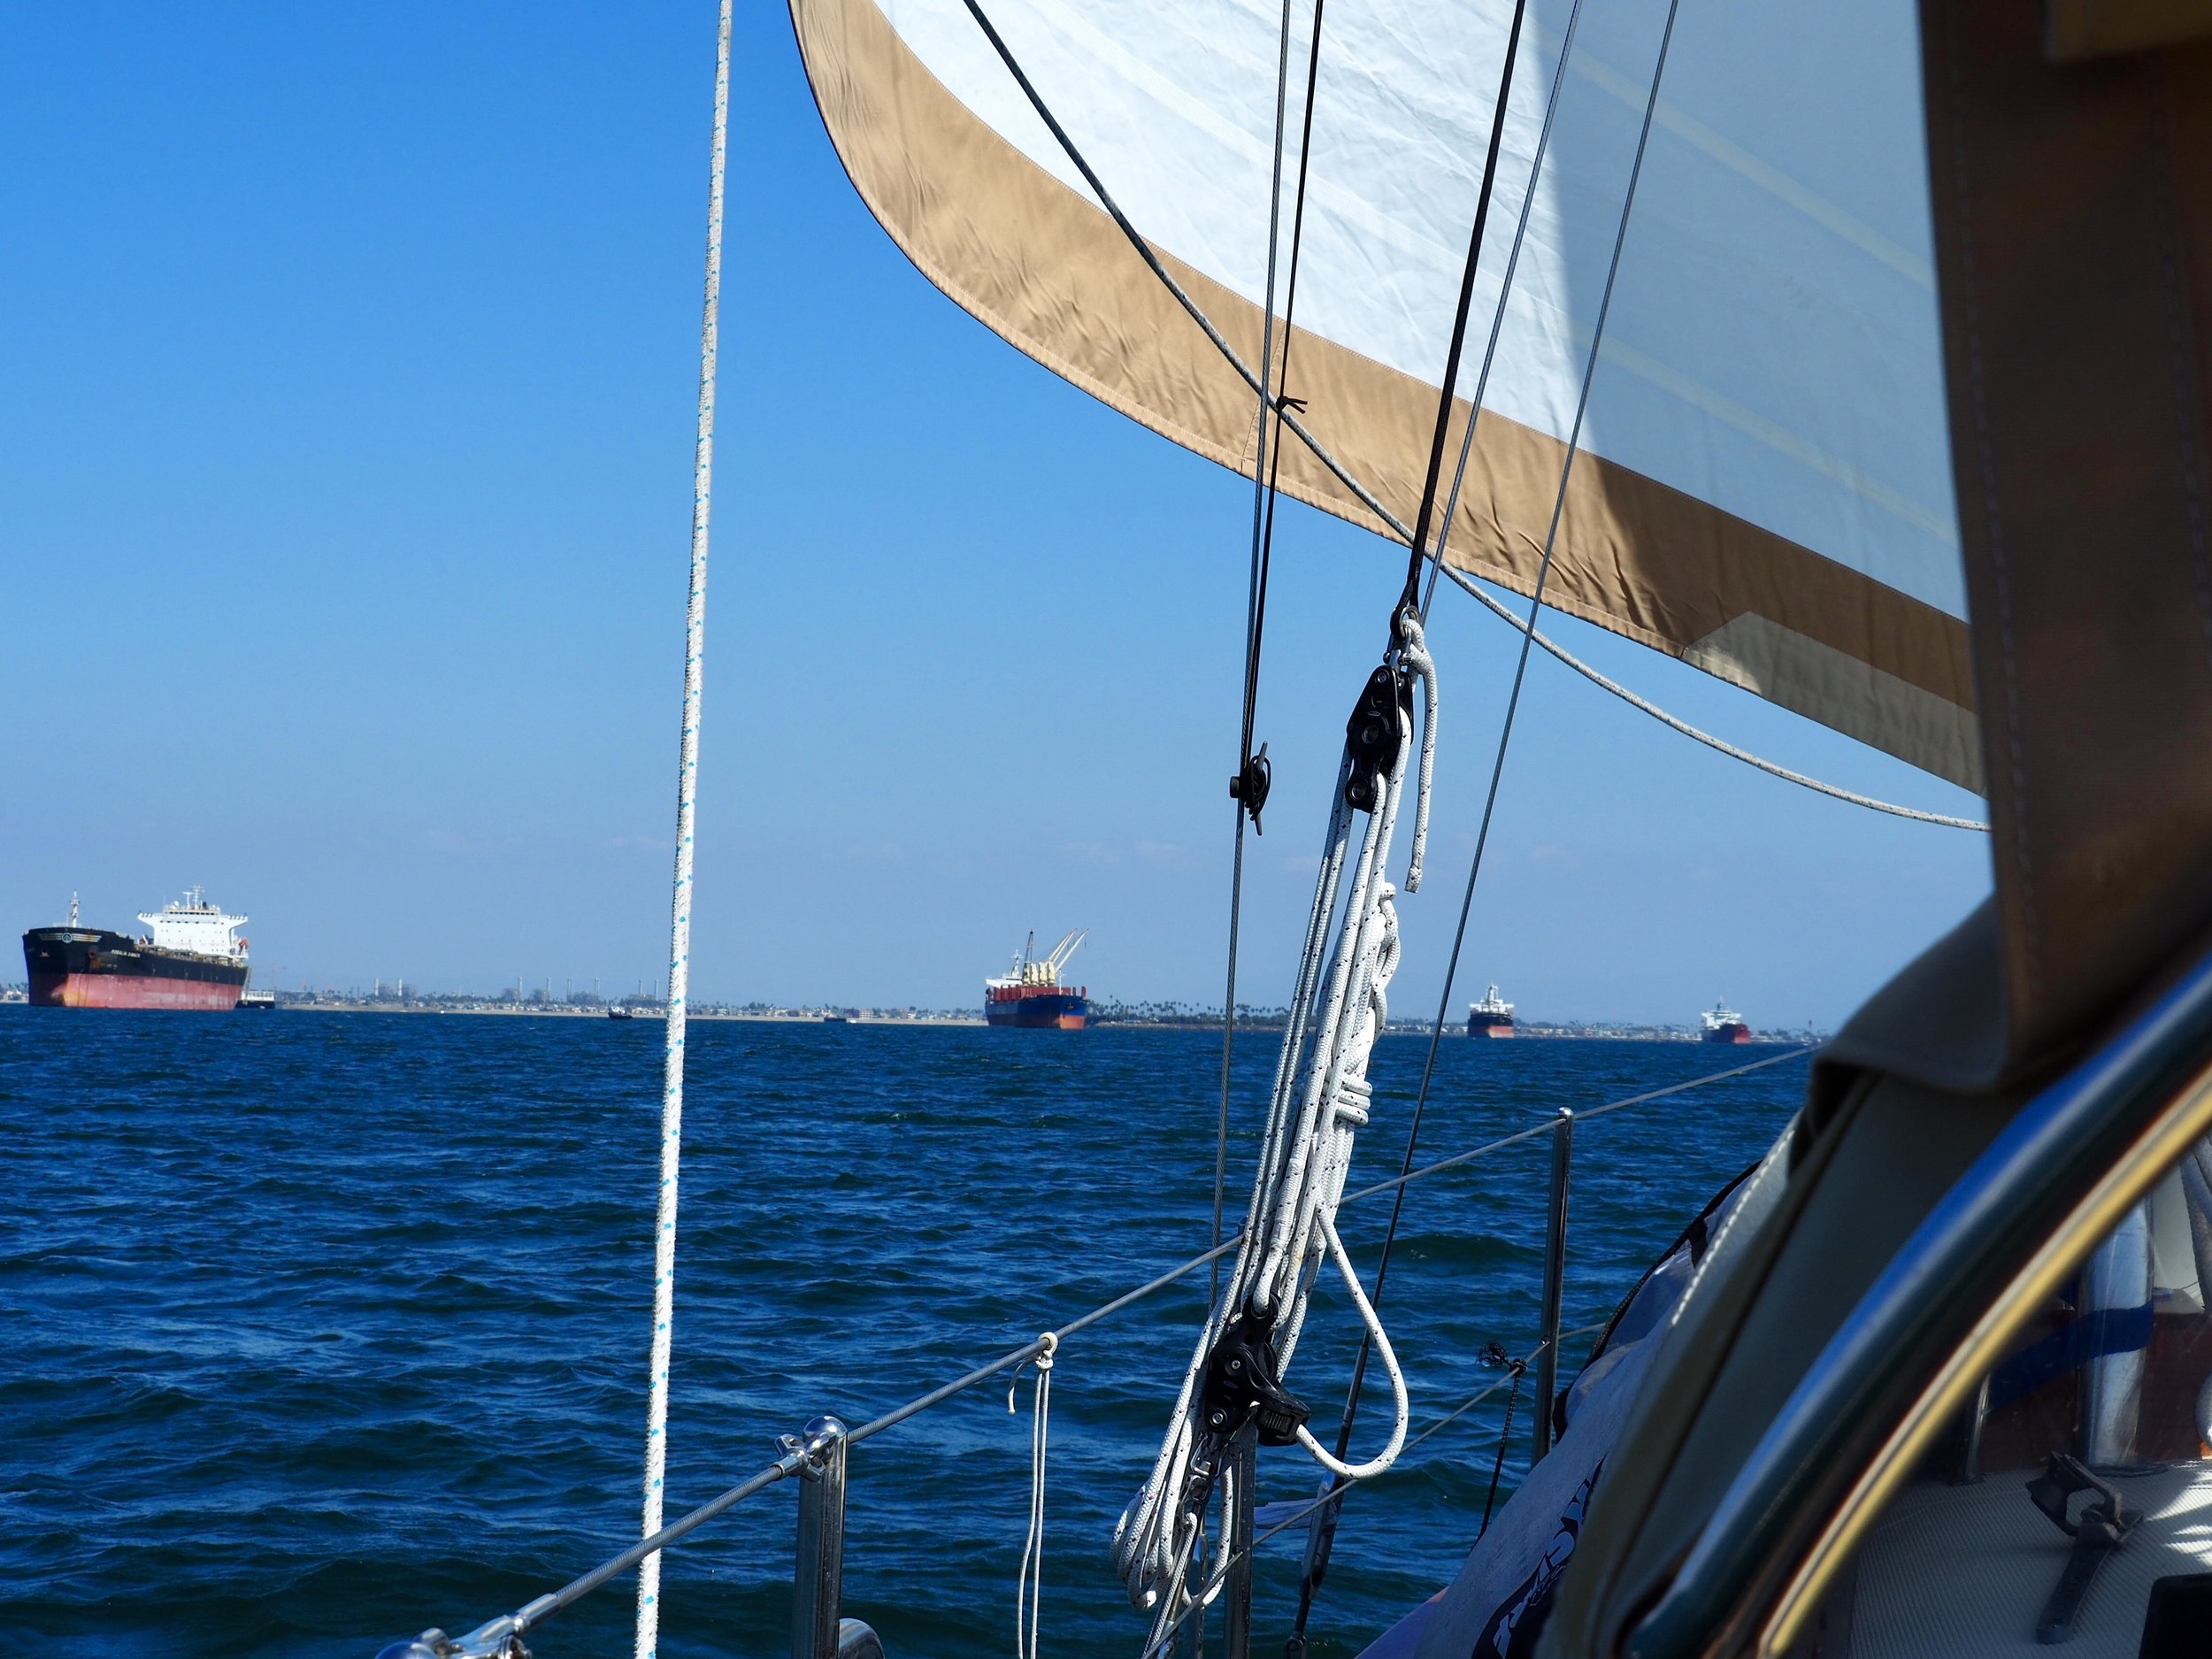 Dodging anchored freighters under sail on the way out of Long Beach Harbor.